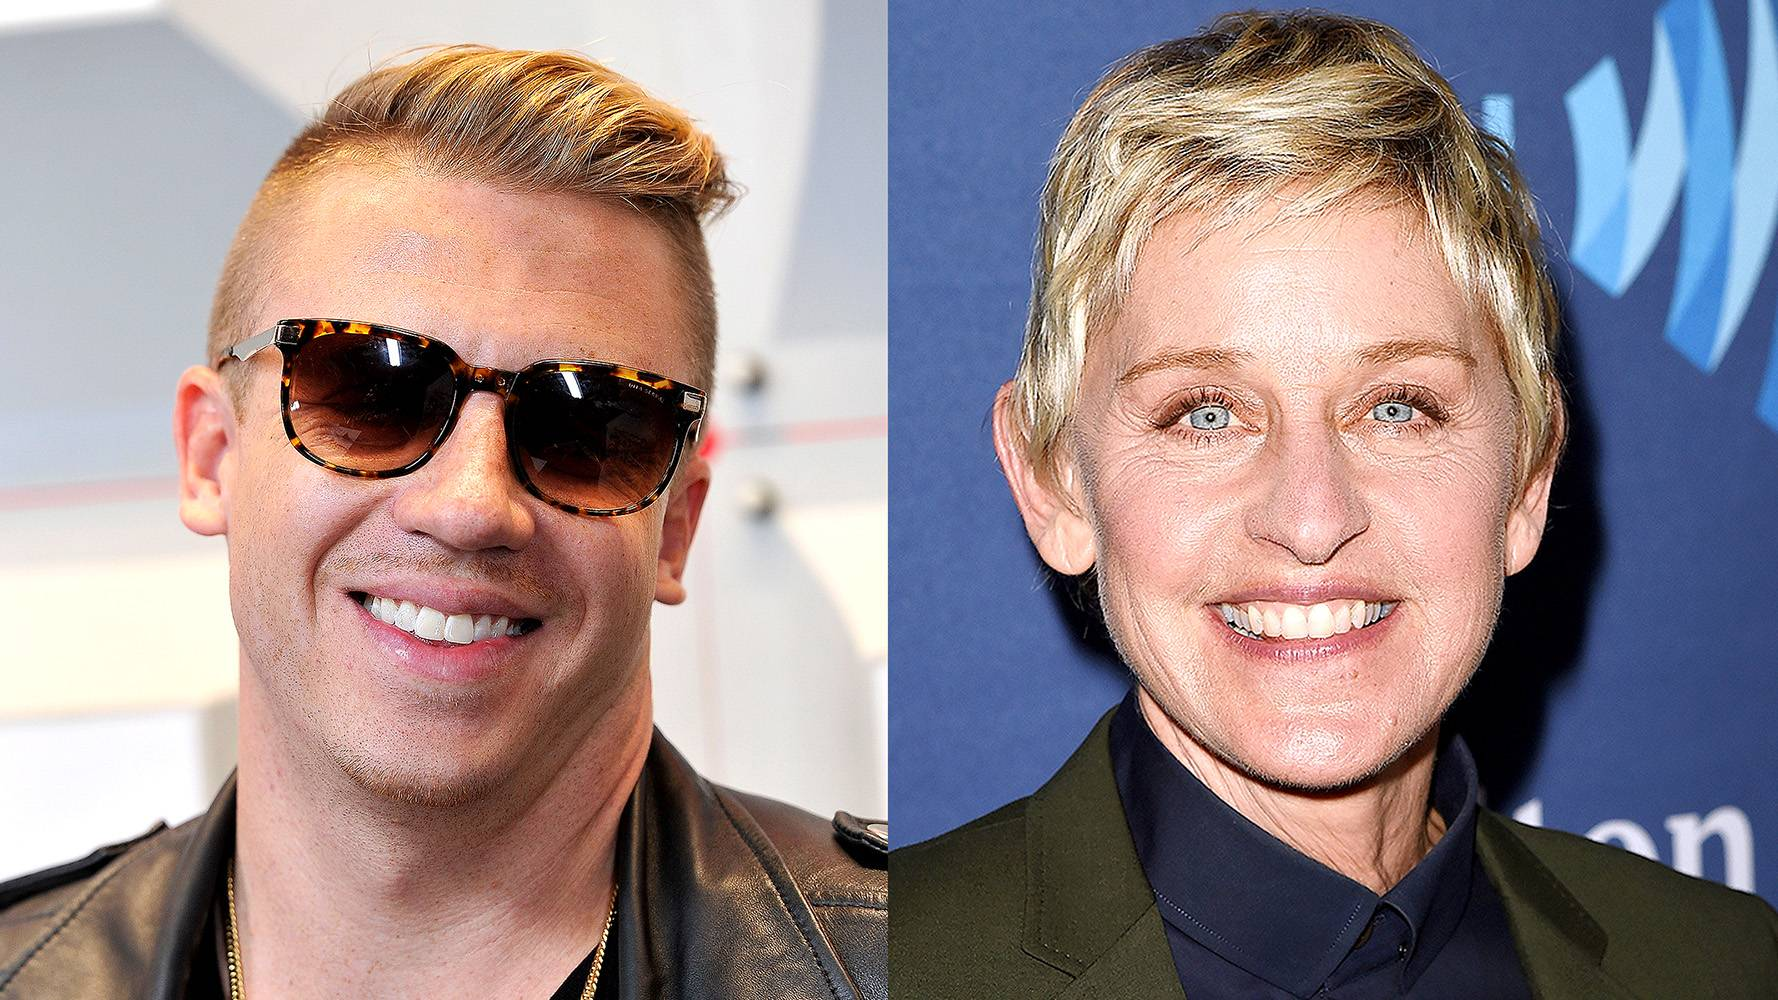 """Macklemore - Who doesn't listen to Ellen? The famous comedian co-signed the rapper on her show after listening to his song """"Same Love.""""(Photos from Left: David Becker/Getty Images for iHeartMedia, Jason Merritt/Getty Images for GLAAD)"""